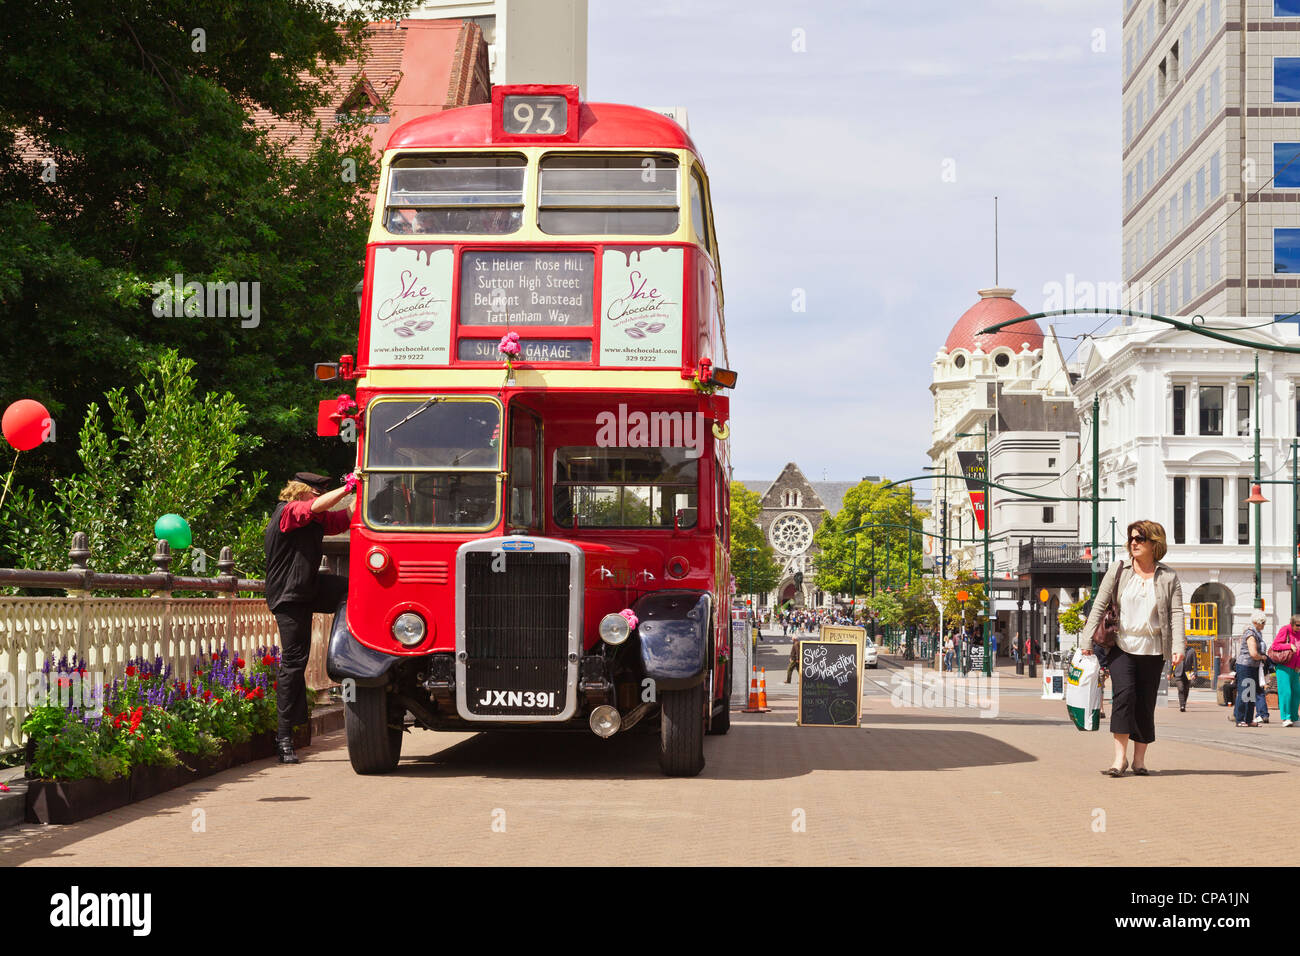 London Transport red double decker bus just about to set off on a tour of Christchurch. - Stock Image